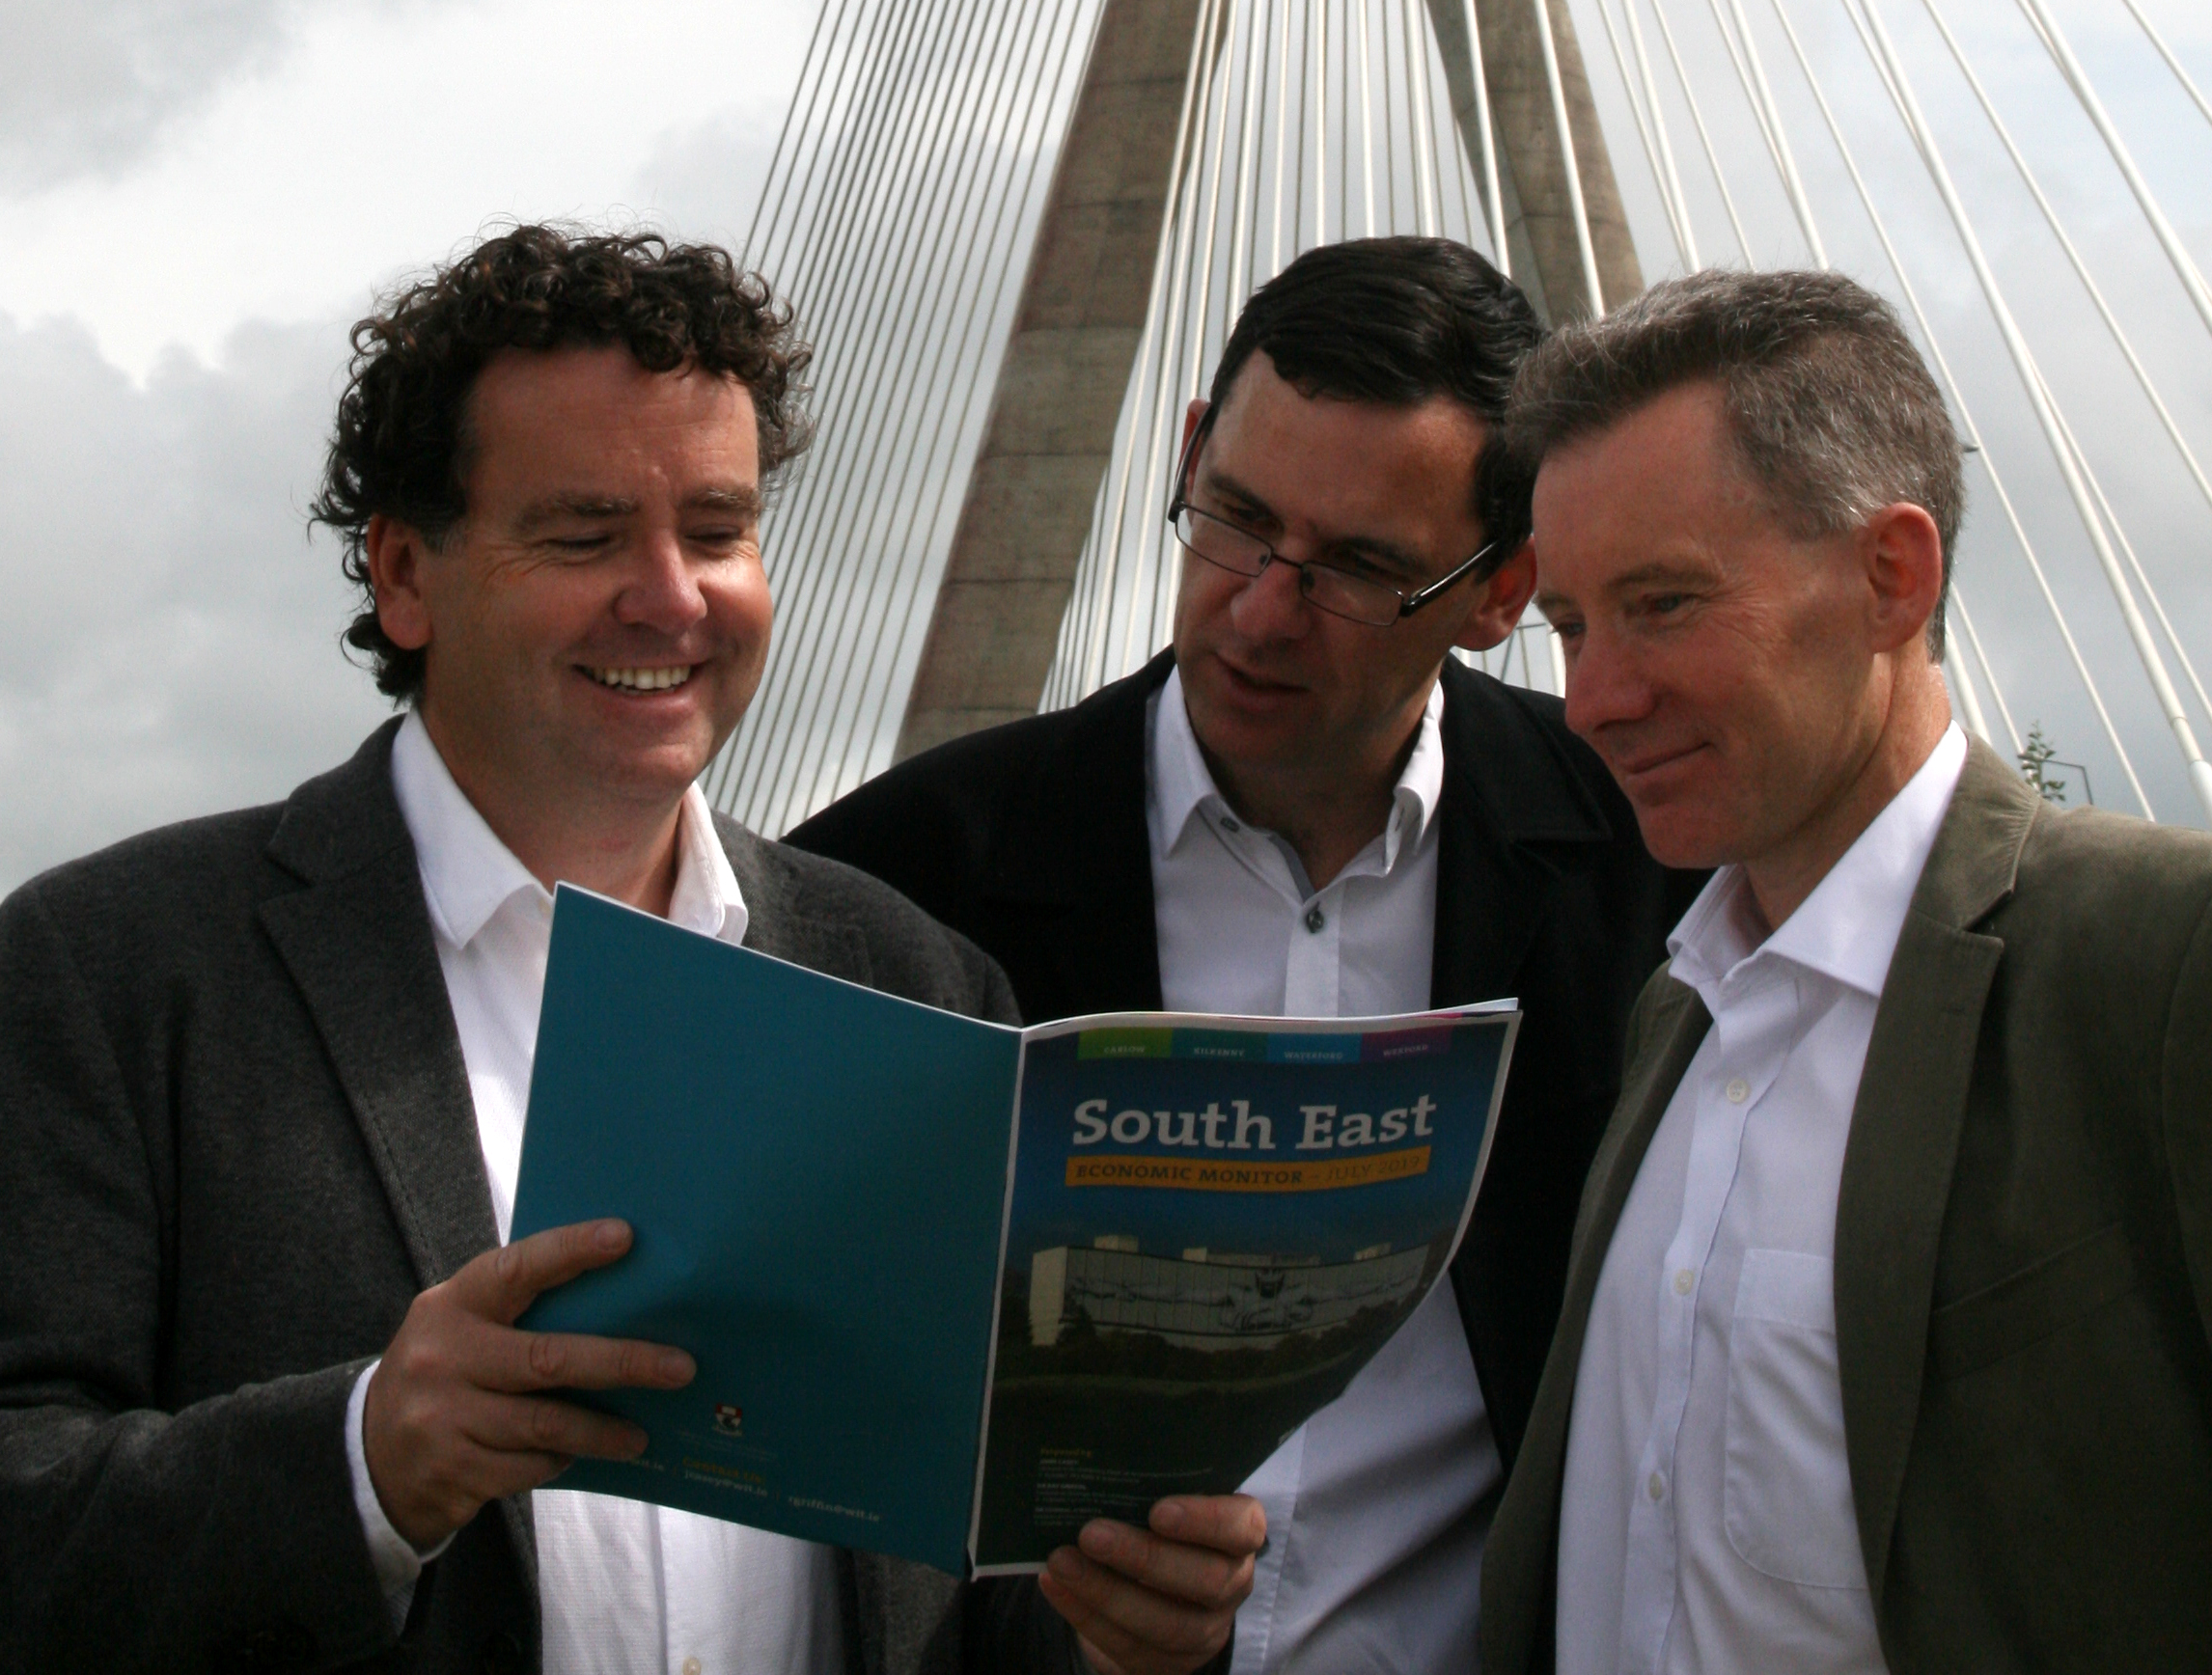 The South East Economic Monitor 2019 report authors (from left to right), Dr Ray Griffin, Dr Cormac O'Keeffe and Mr John Casey.